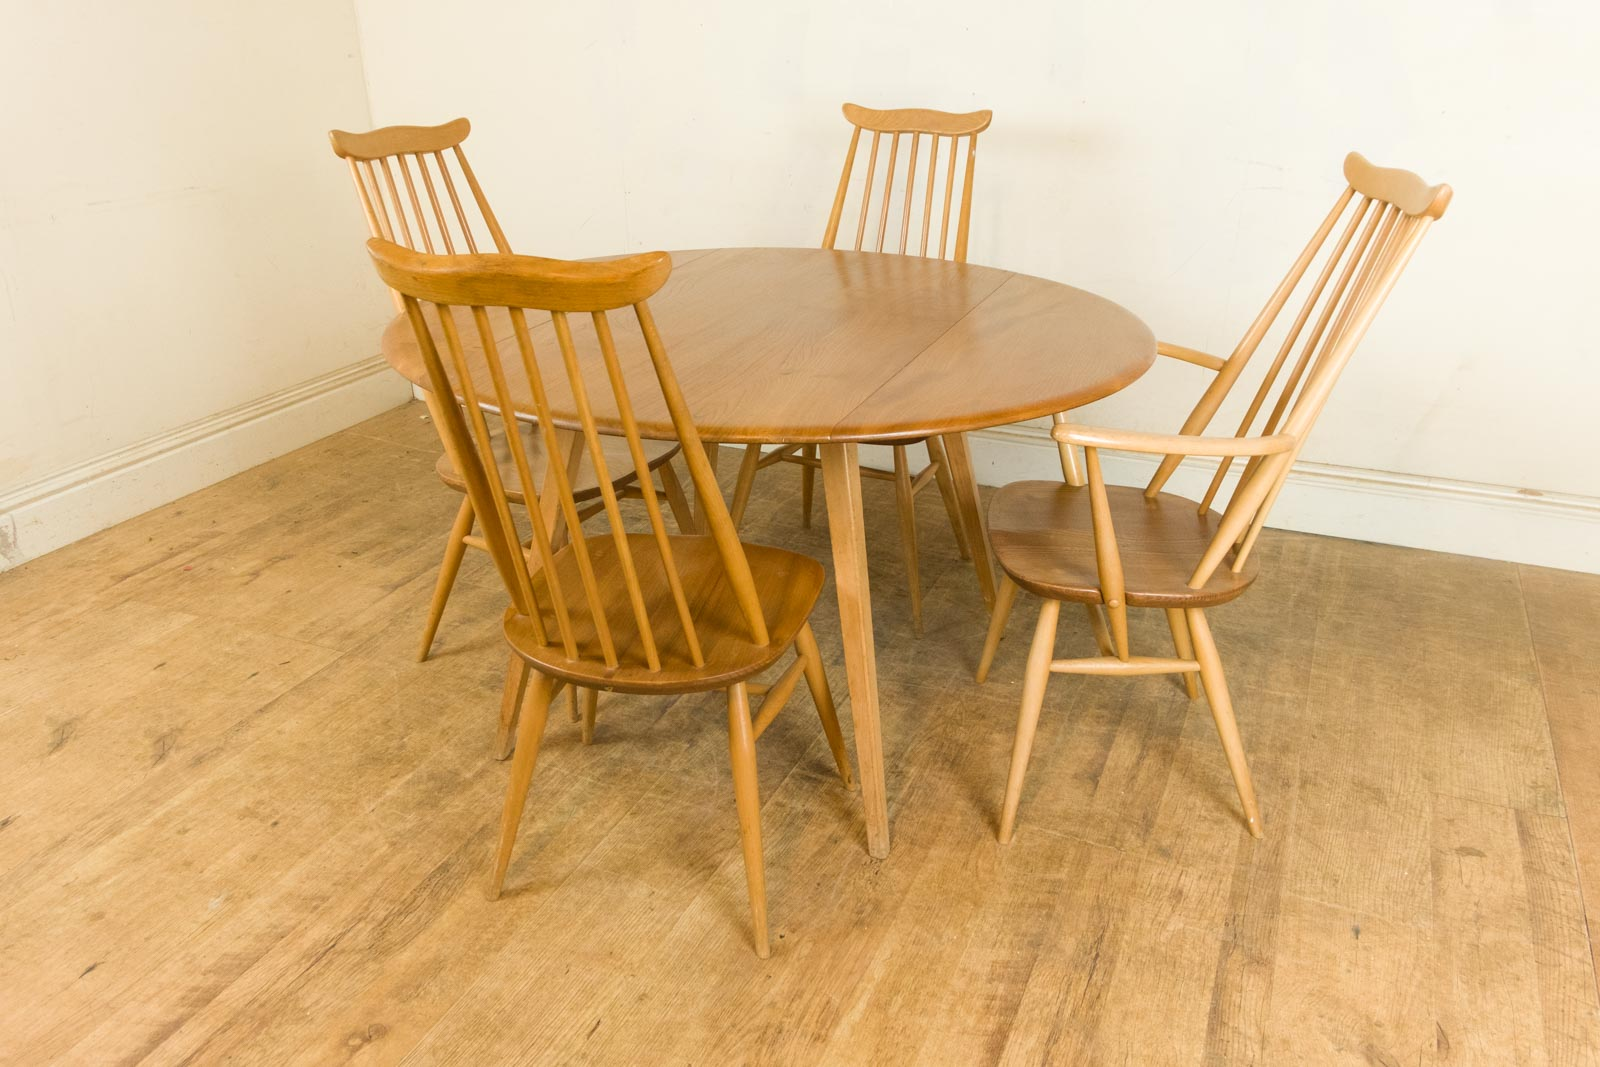 Vintage Retro Ercol Light Elm Drop Leaf Dining Table and 4  : HV160417 4 from www.ebay.co.uk size 1600 x 1067 jpeg 222kB